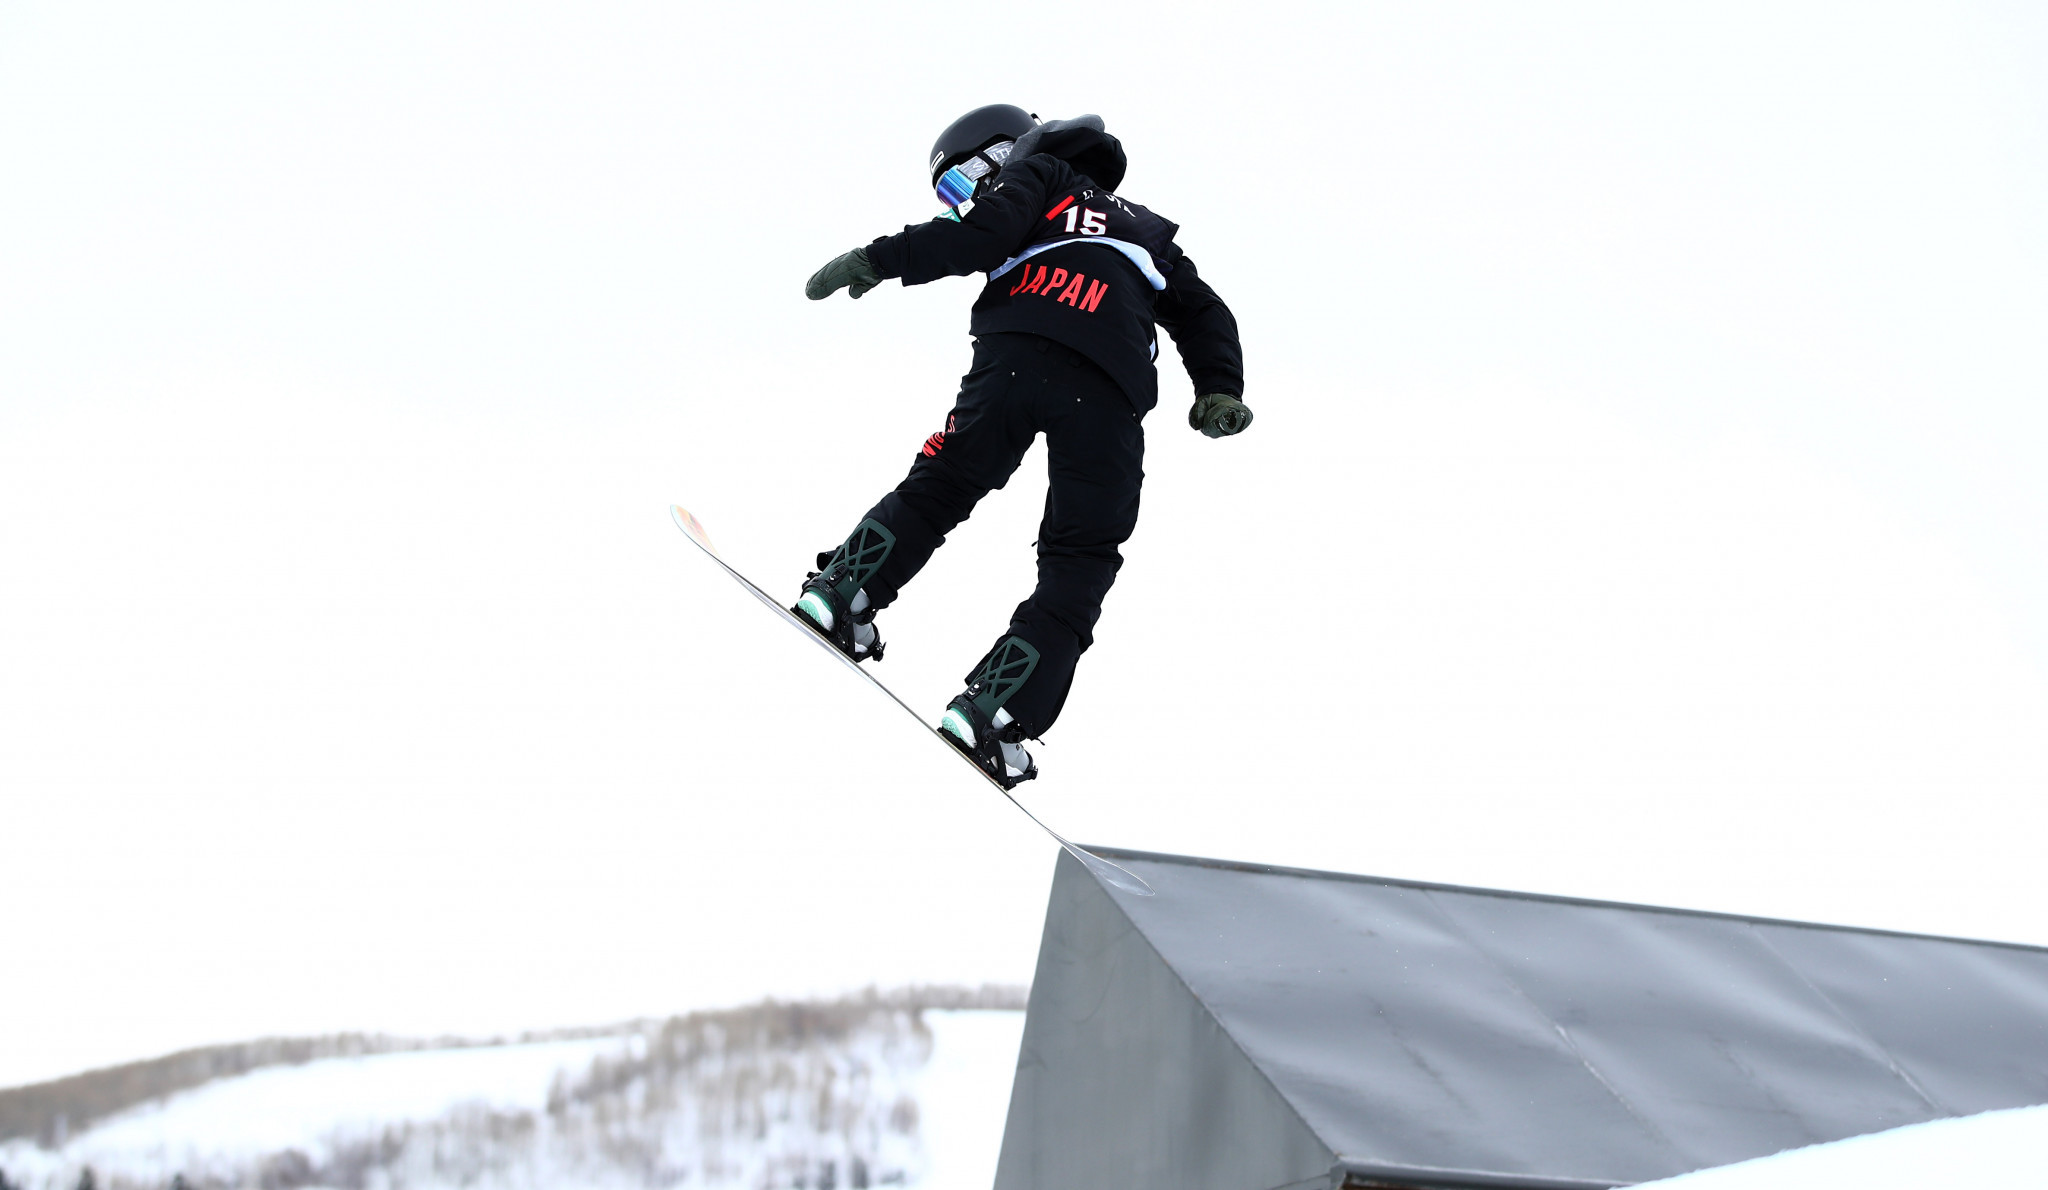 US Open Snowboarding Championships 2021 cancelled due to coronavirus